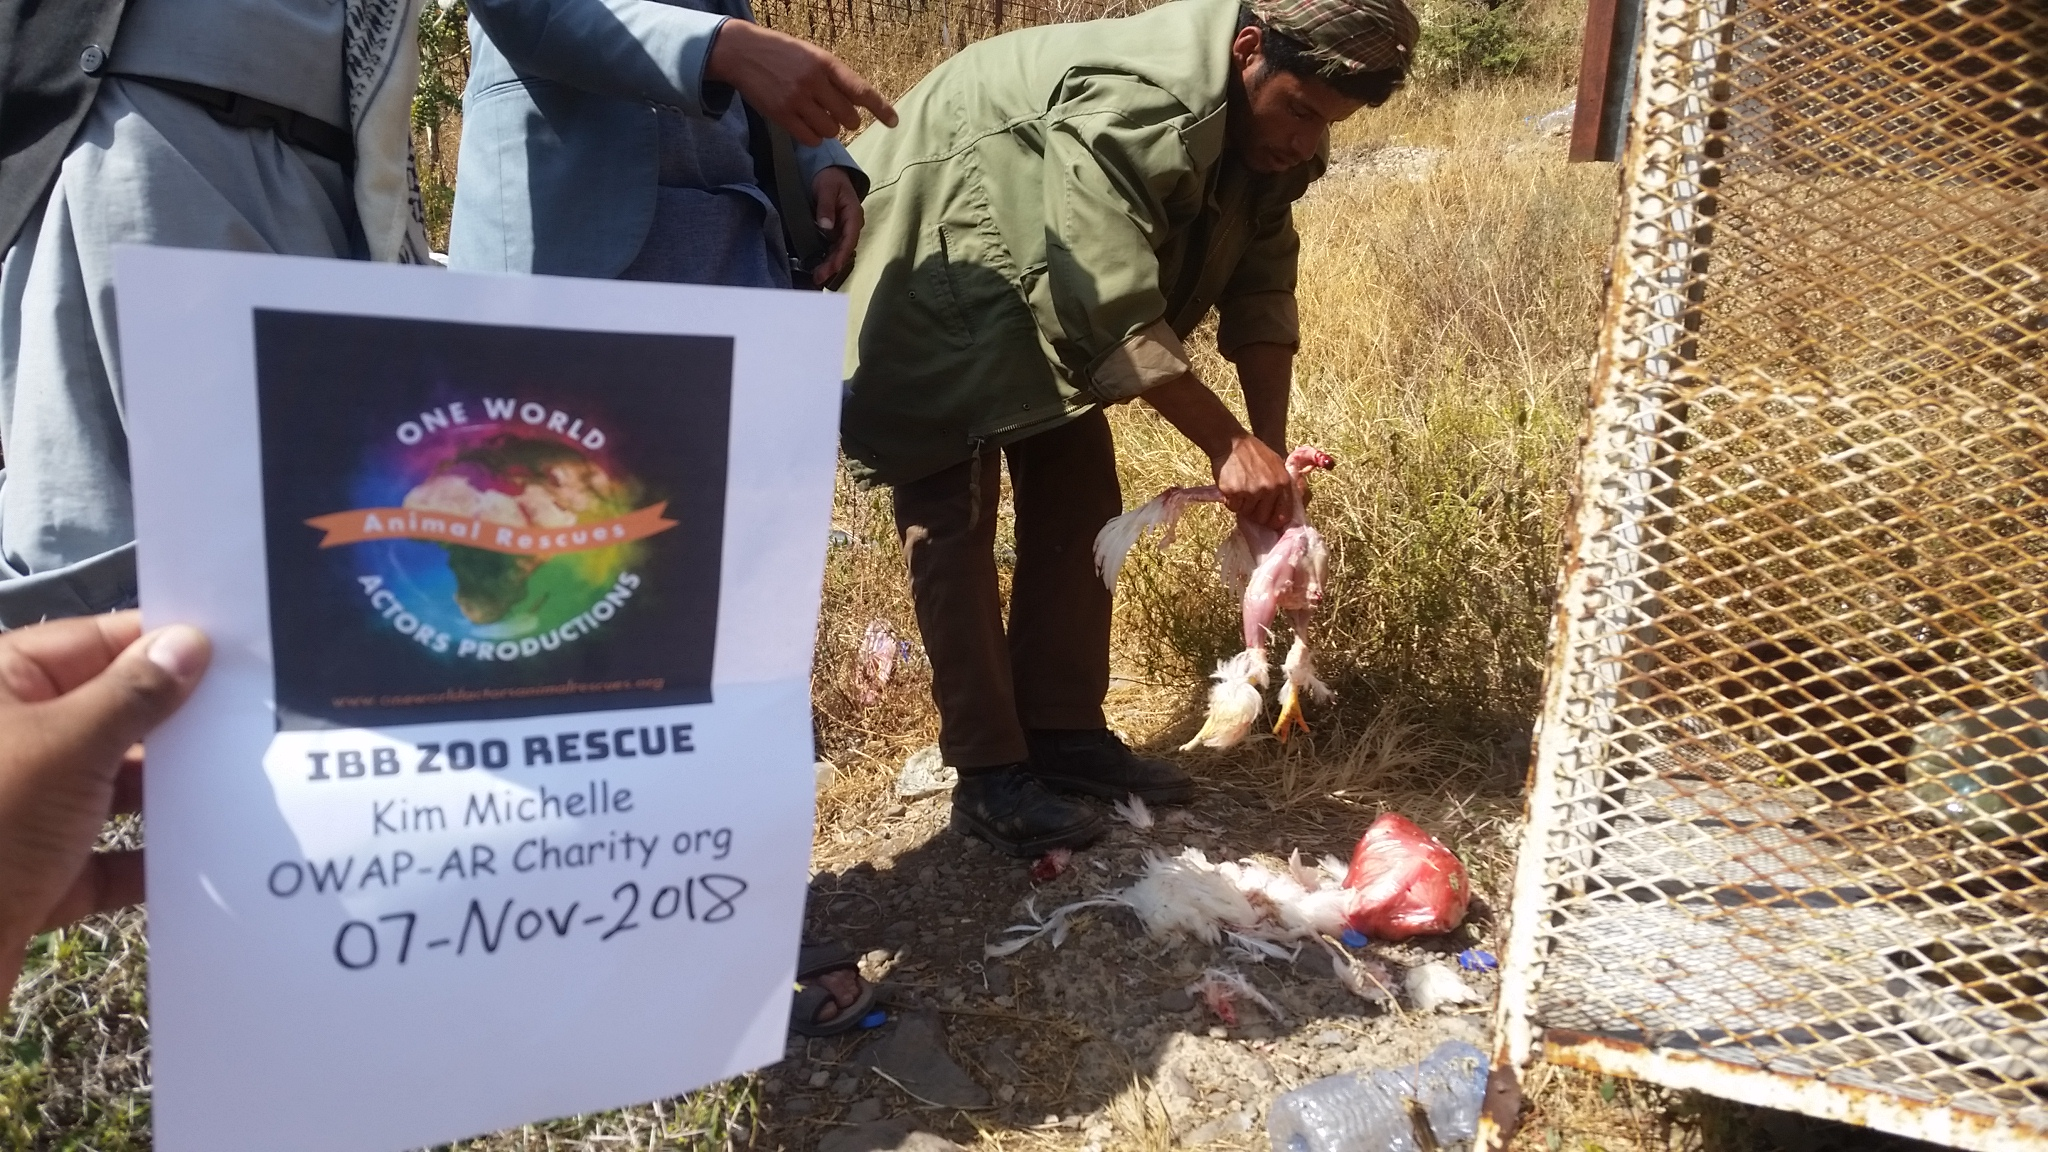 ibb zoo preapruing chicken for eagle Yemen rescue by OWAP-AR with our sign by Hisham.jpg